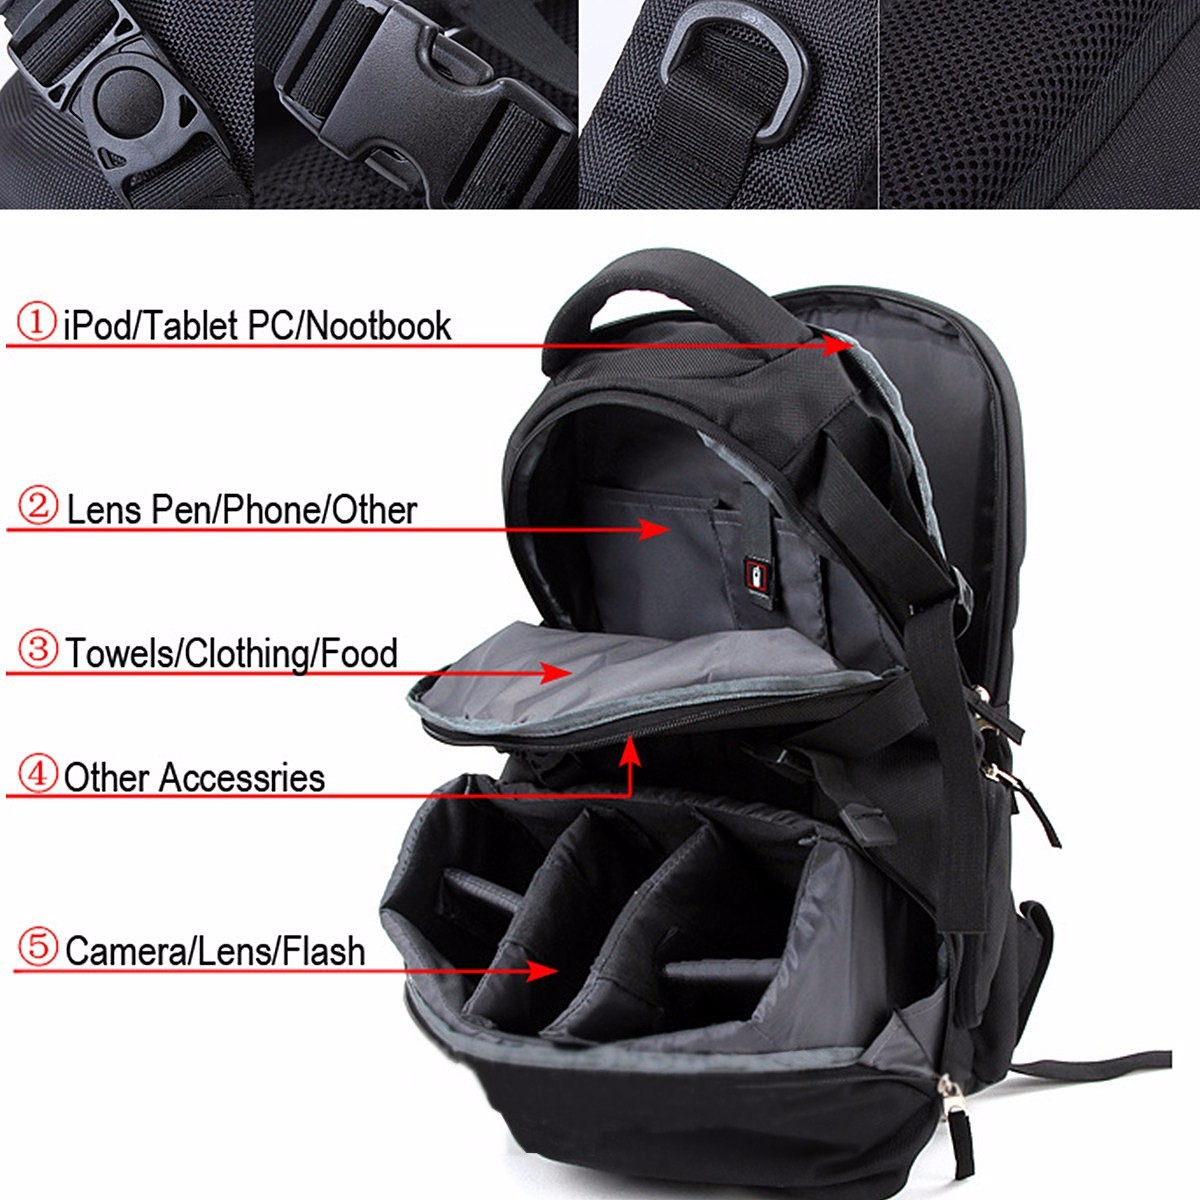 Nylon Waterproof Shockproof Camera Laptop Bag Lens Case Backpack For Canon Nikon SLR DSLR Camera